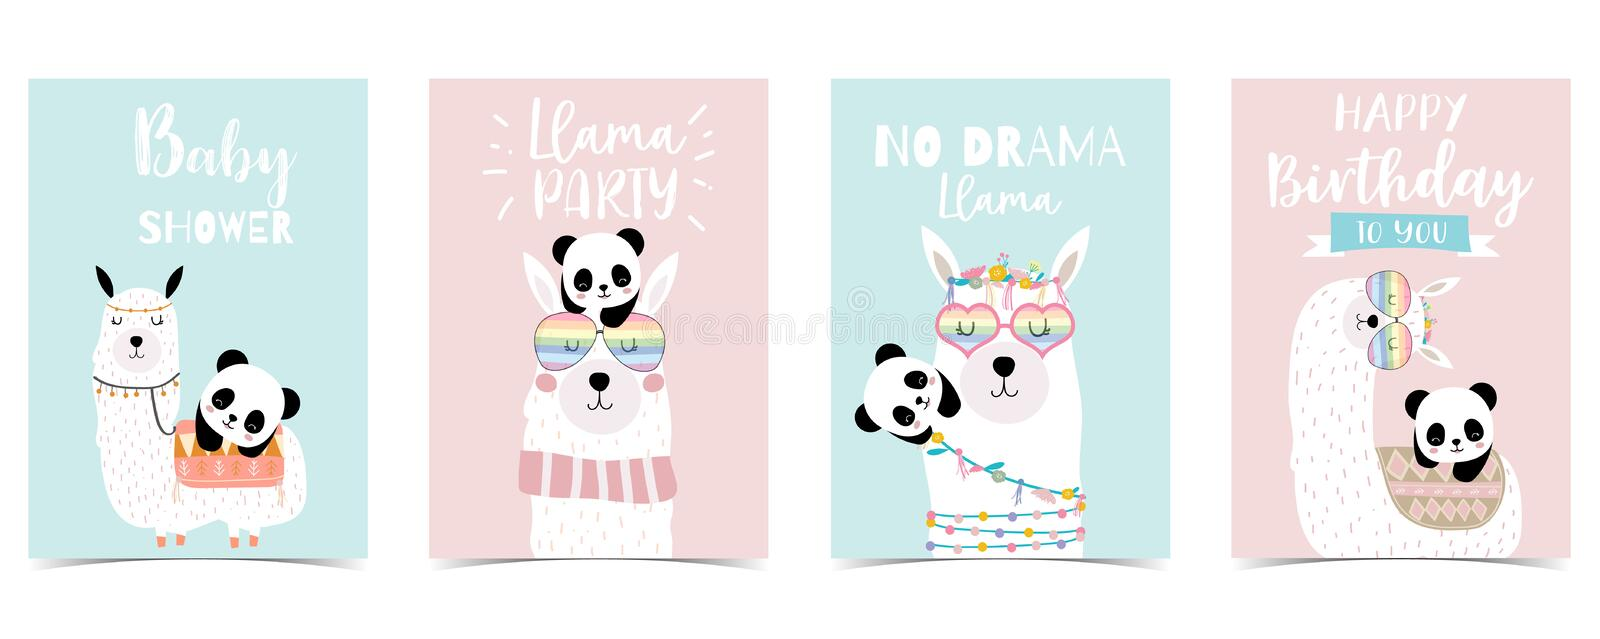 Pastel baby shower invitation card with llama and panda stock illustration